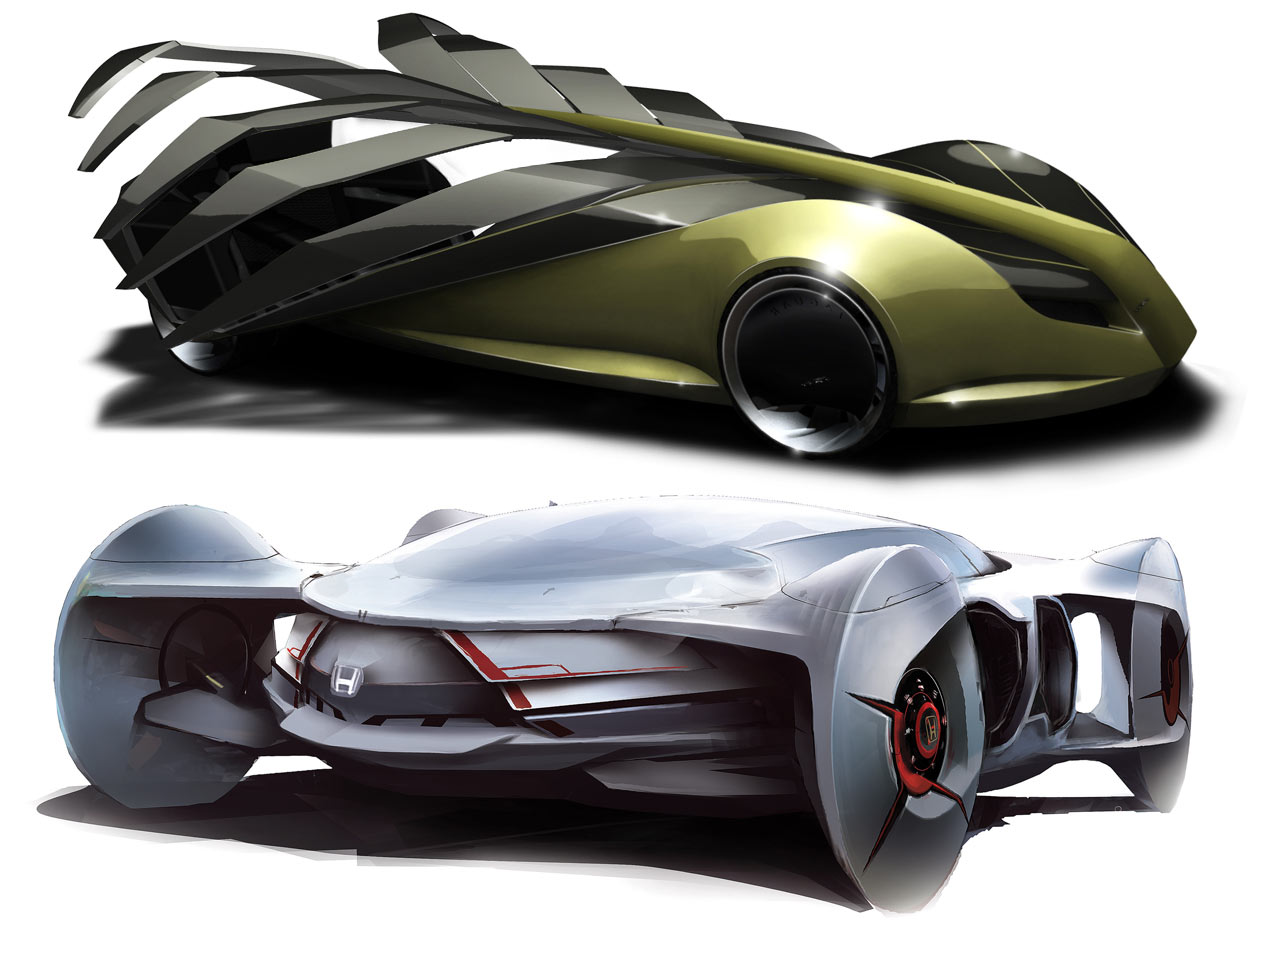 Futuristic Concept Cars Car Body Design